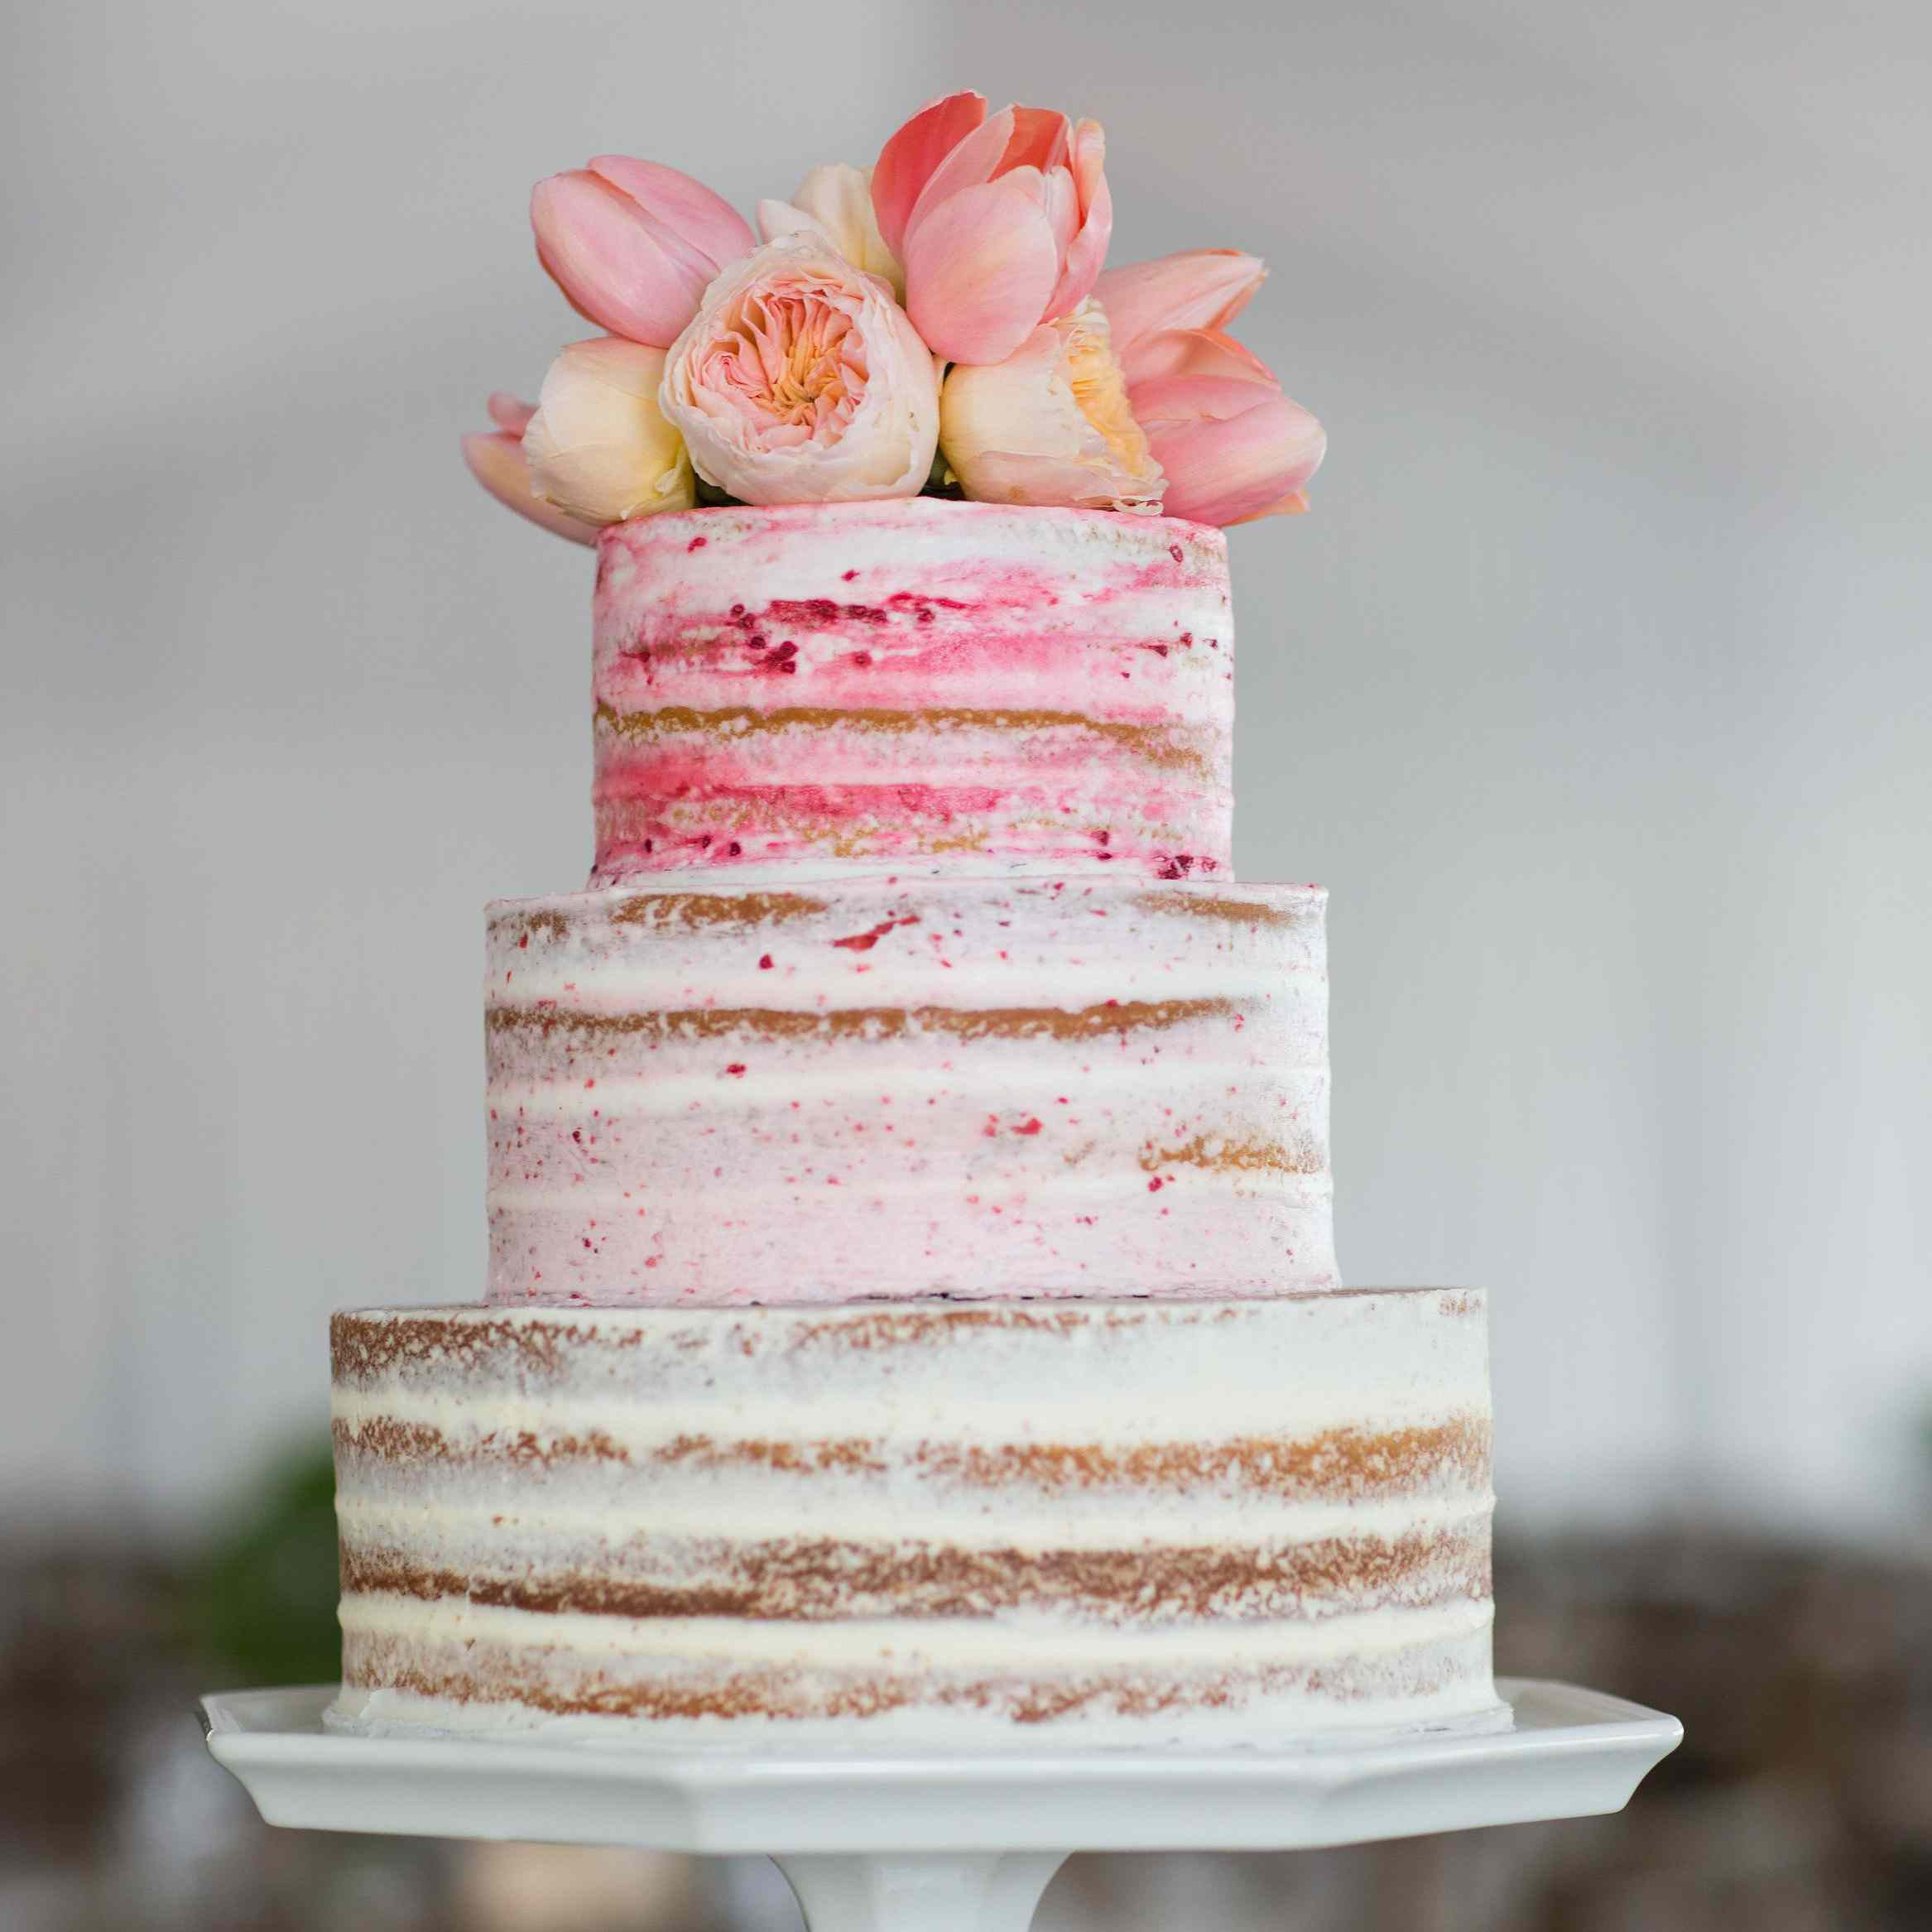 Naked wedding cake with pink ombre frosting